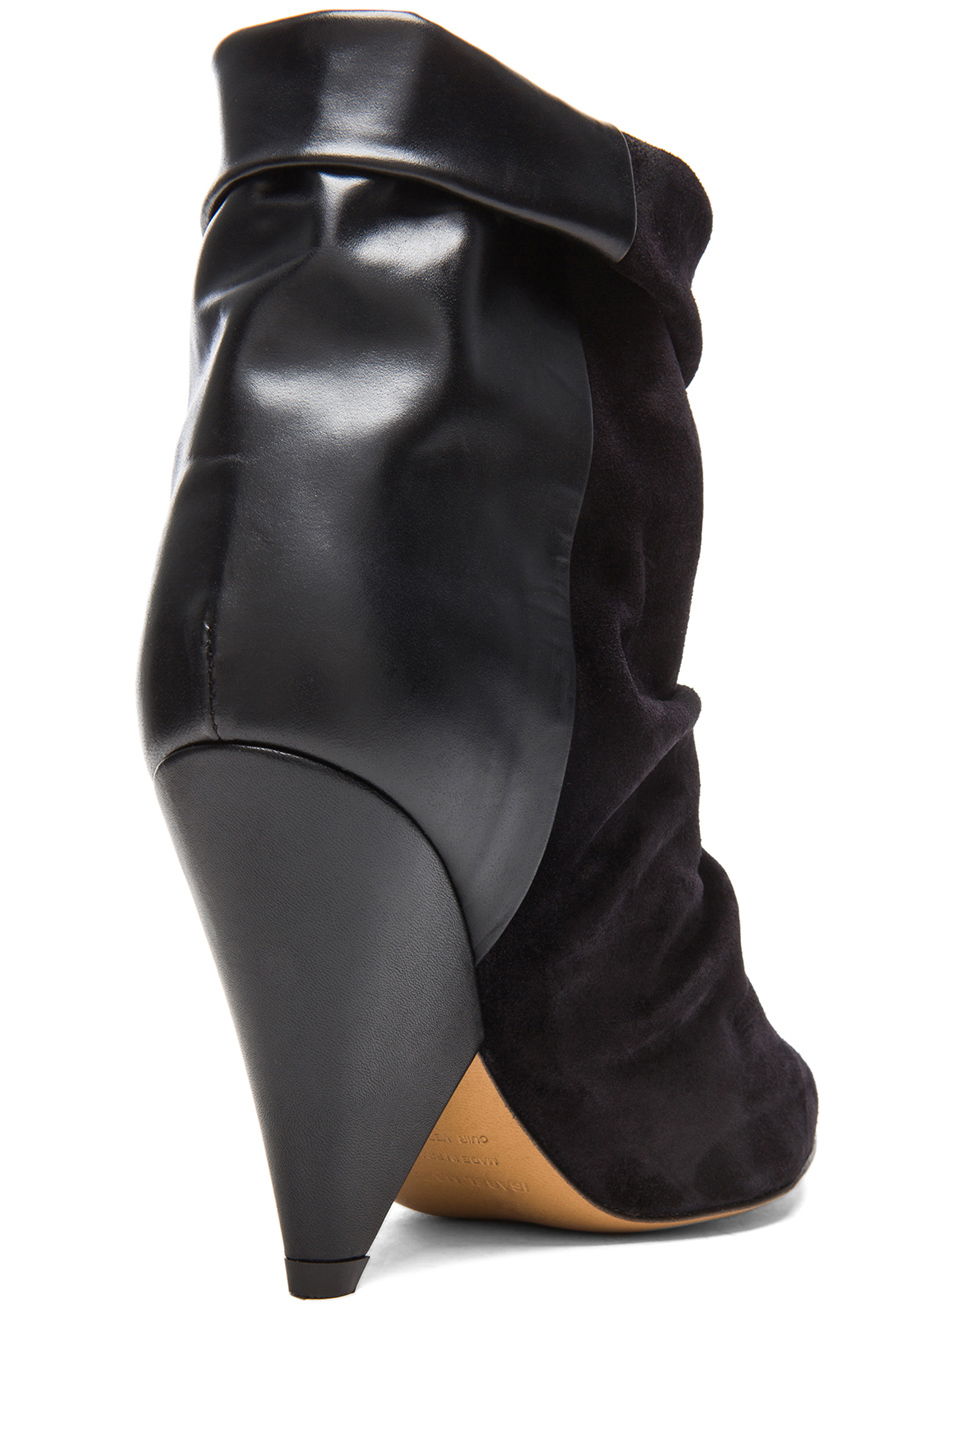 Isabel Marant | Andrew Calfskin Velvet Leather Boots in Black